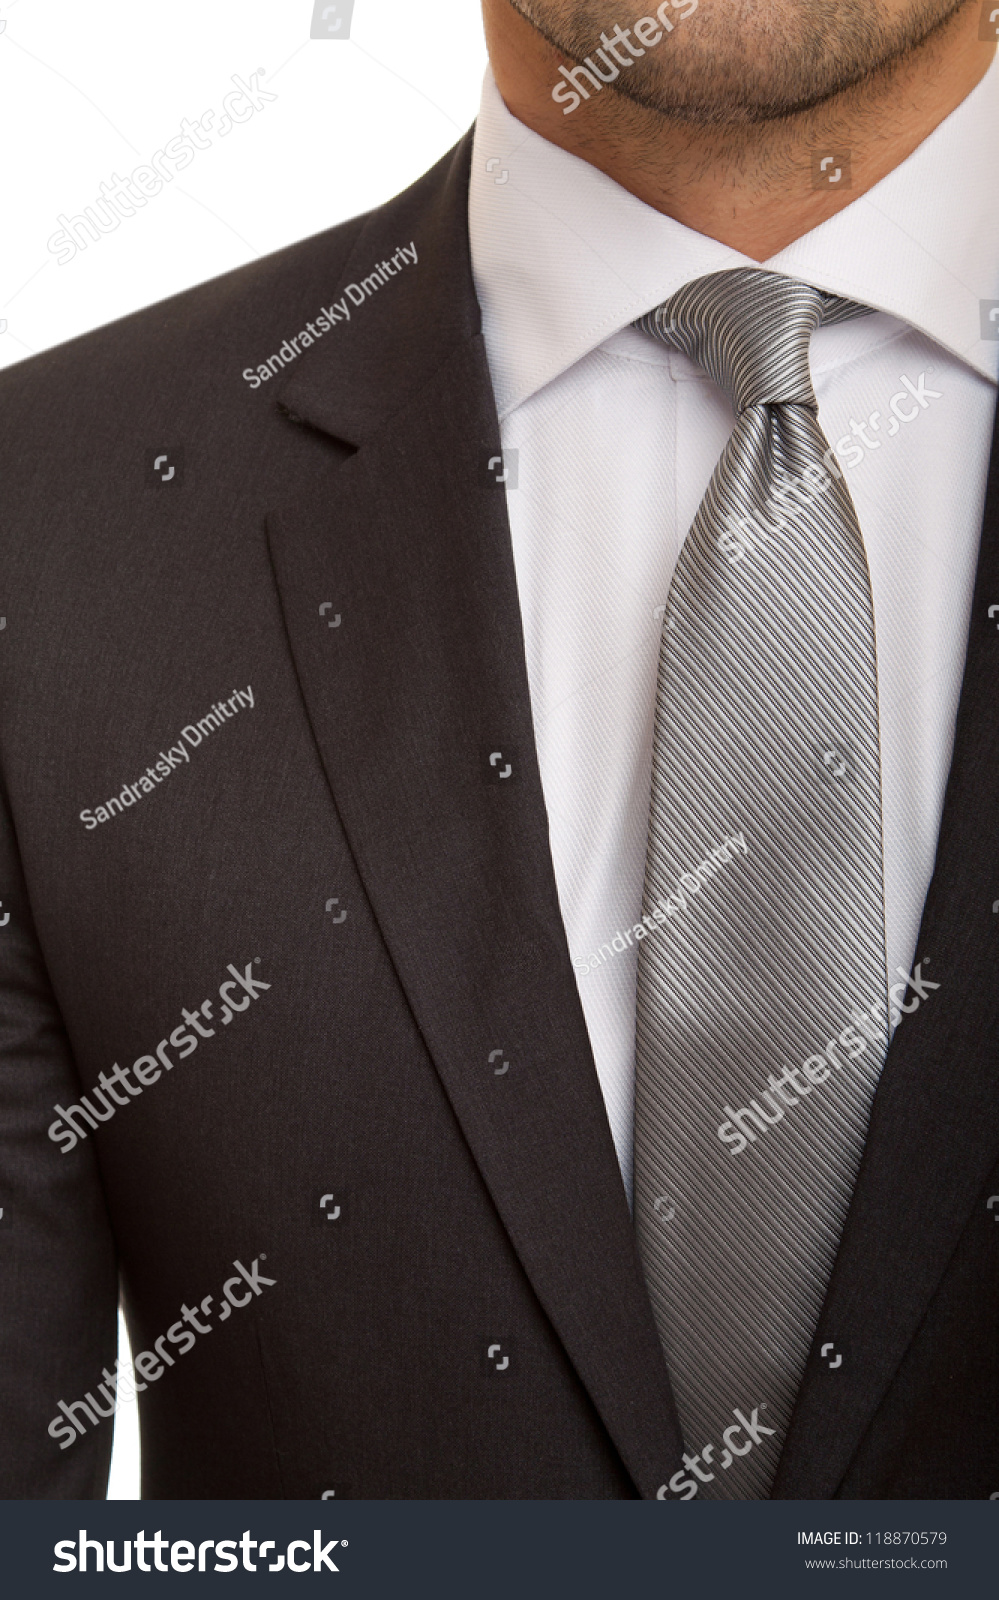 Black Suit Grey Tie Stock Photo 118870579 - Shutterstock